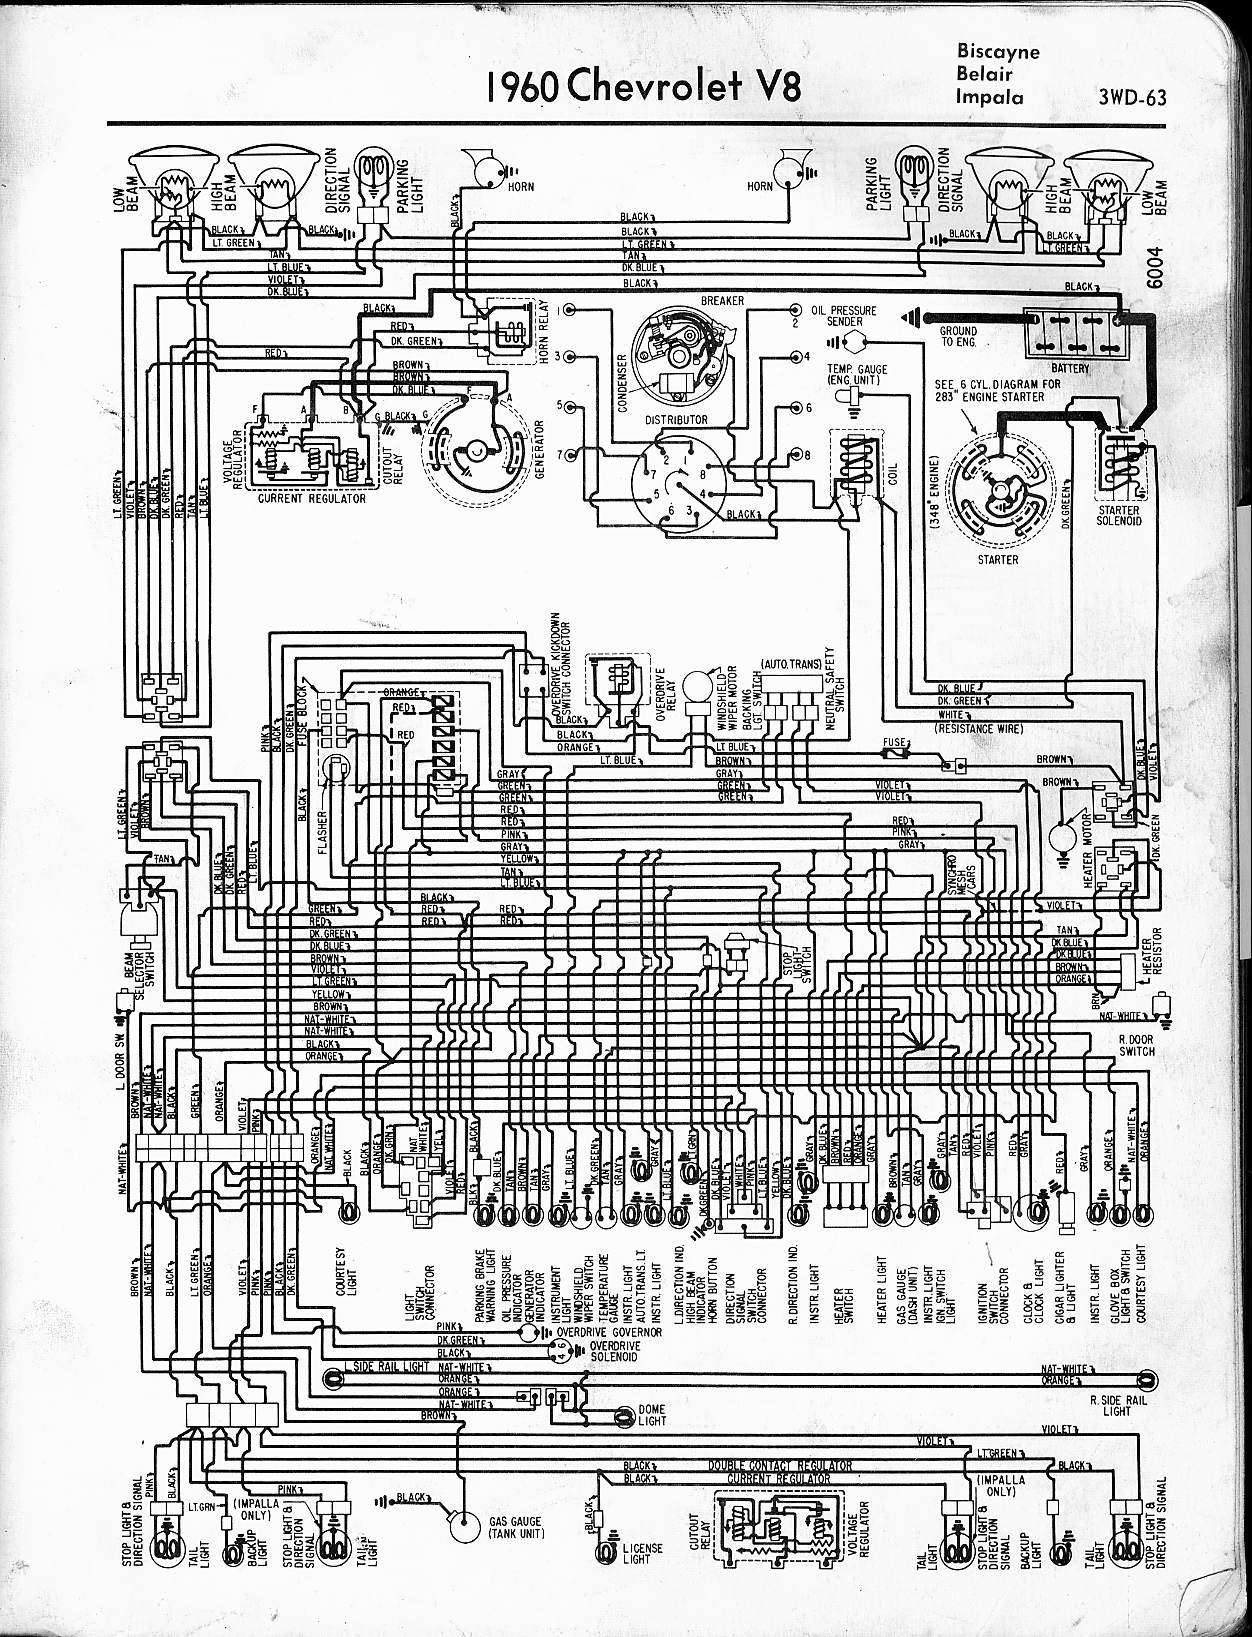 2006 Impala Wiring Schematic - 57 65 Chevy Wiring Diagrams 3h